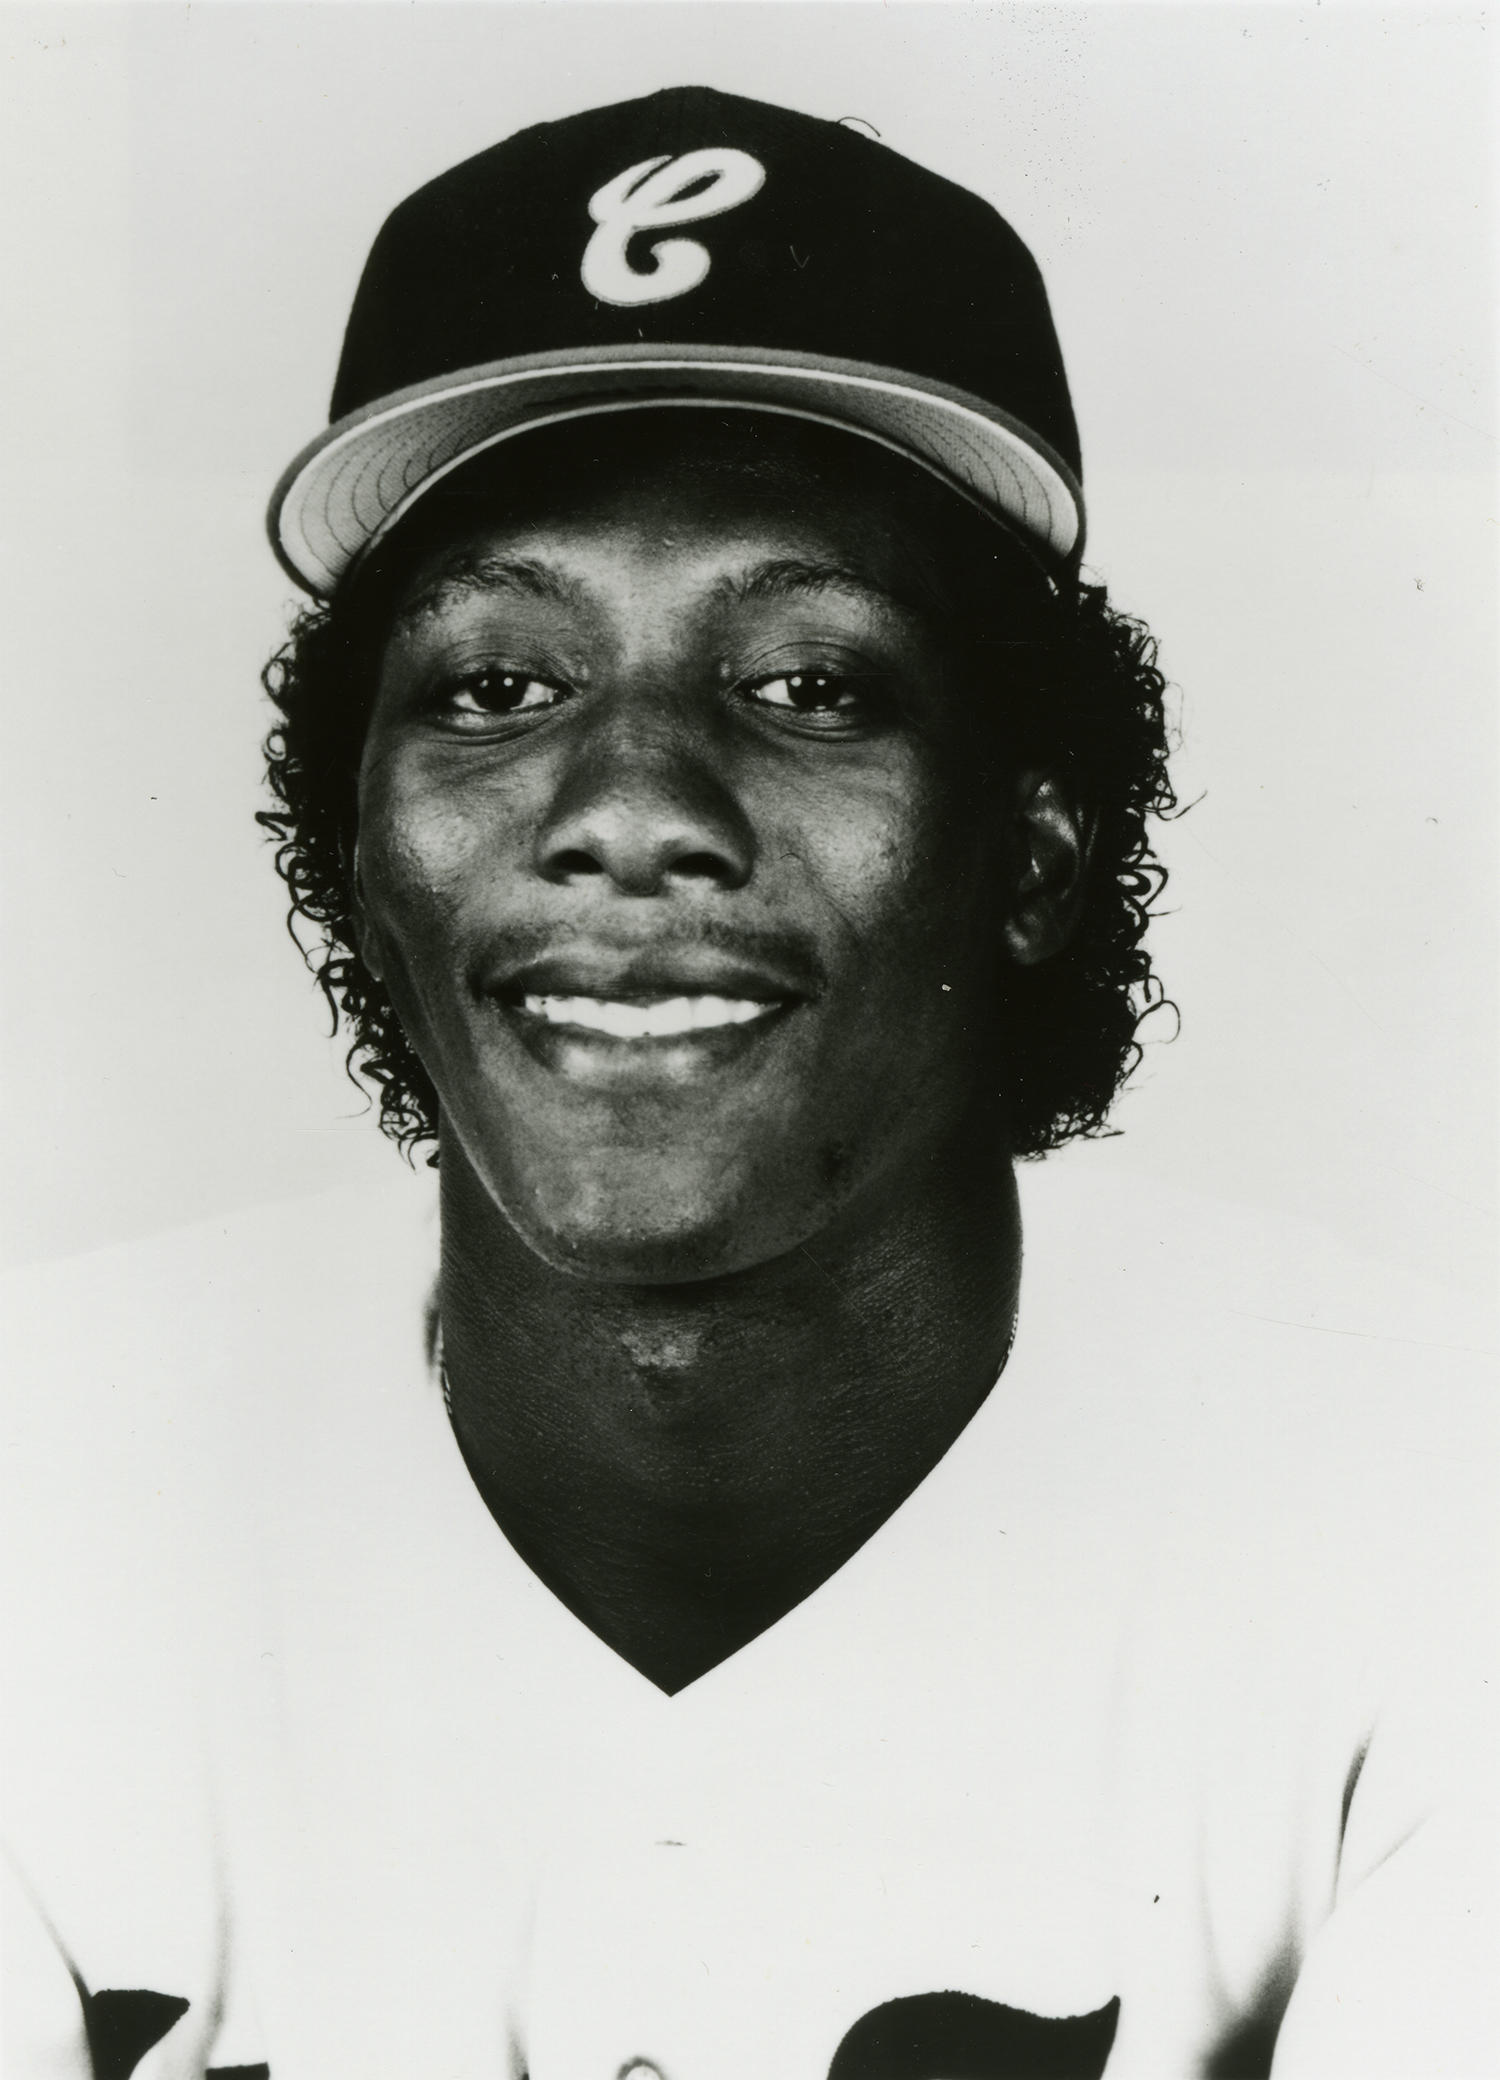 Melido Perez played for the Chicago White Sox from 1988-1991, before he was traded to the New York Yankees. (National Baseball Hall of Fame)